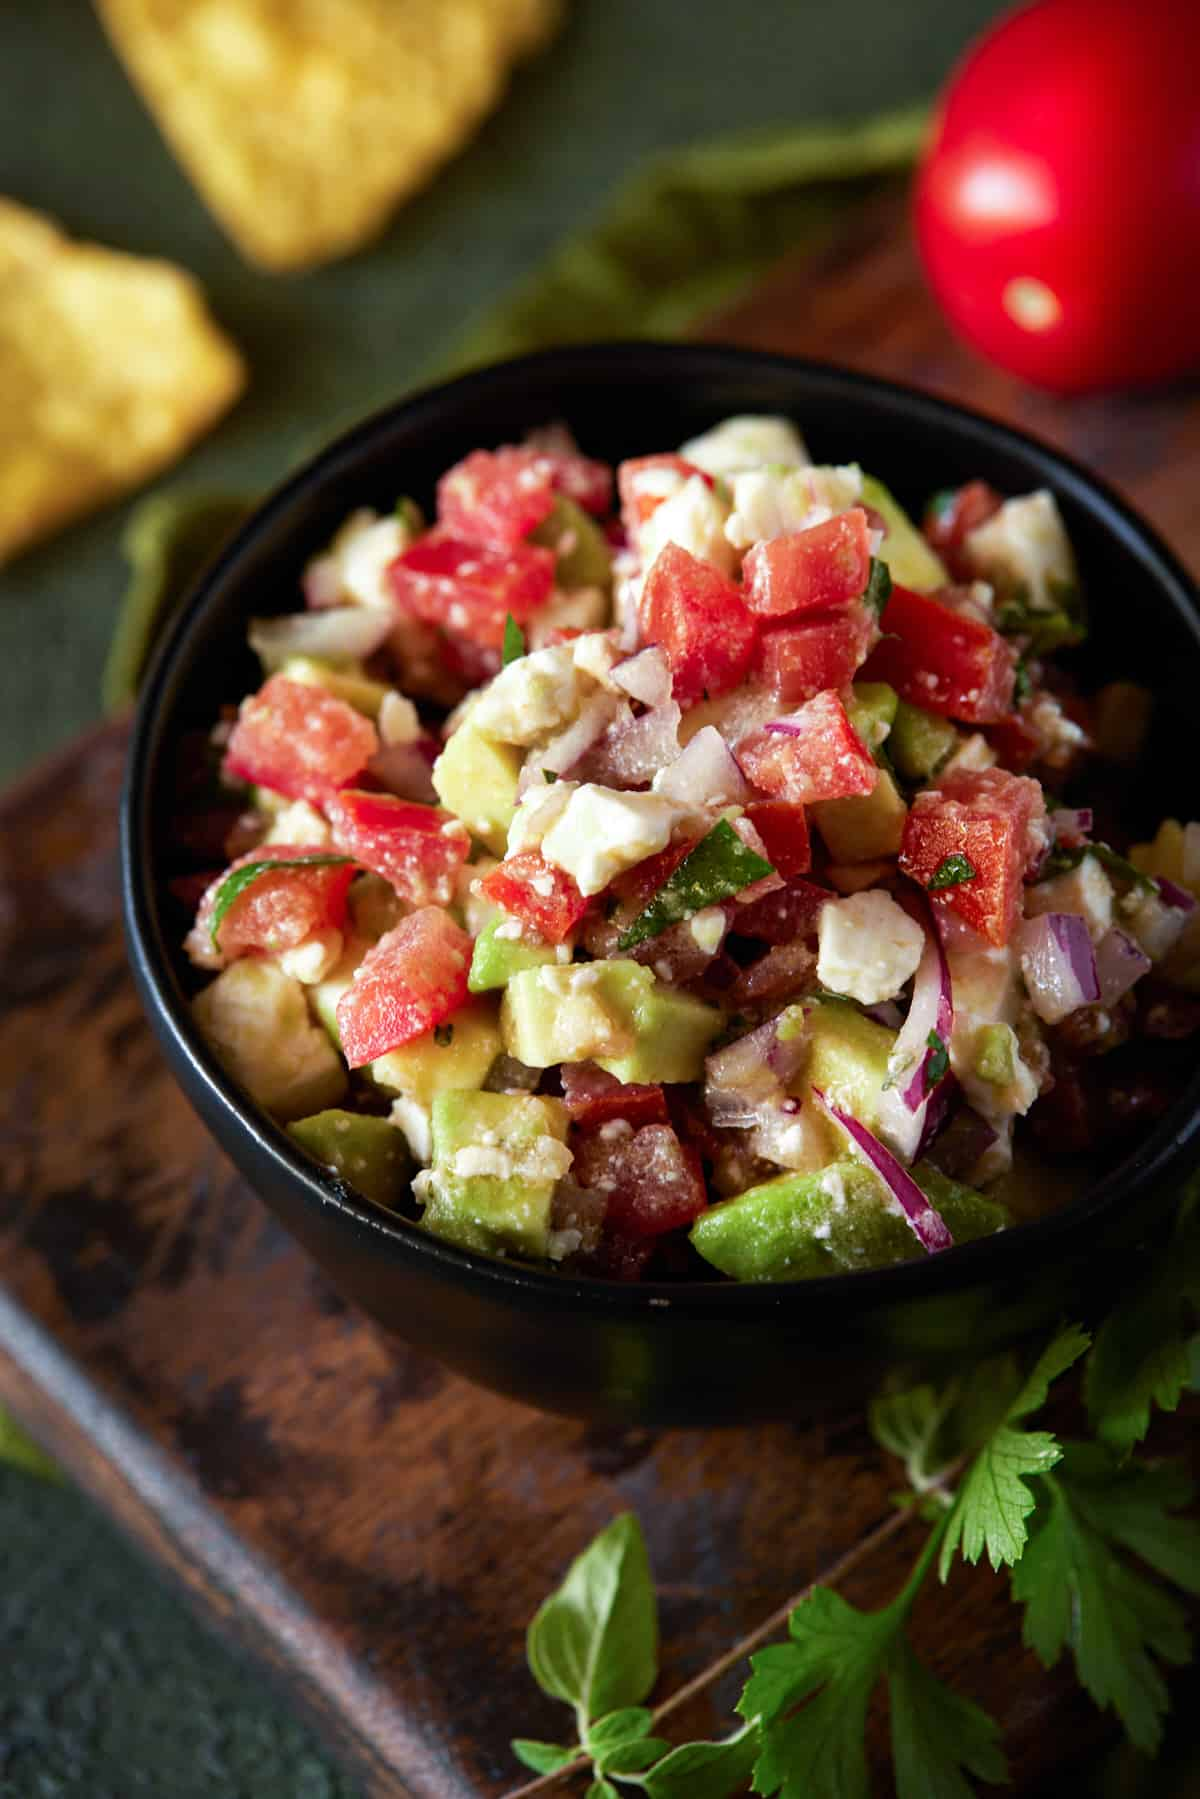 Bowl of chopped salsa and feta cheese with chips.